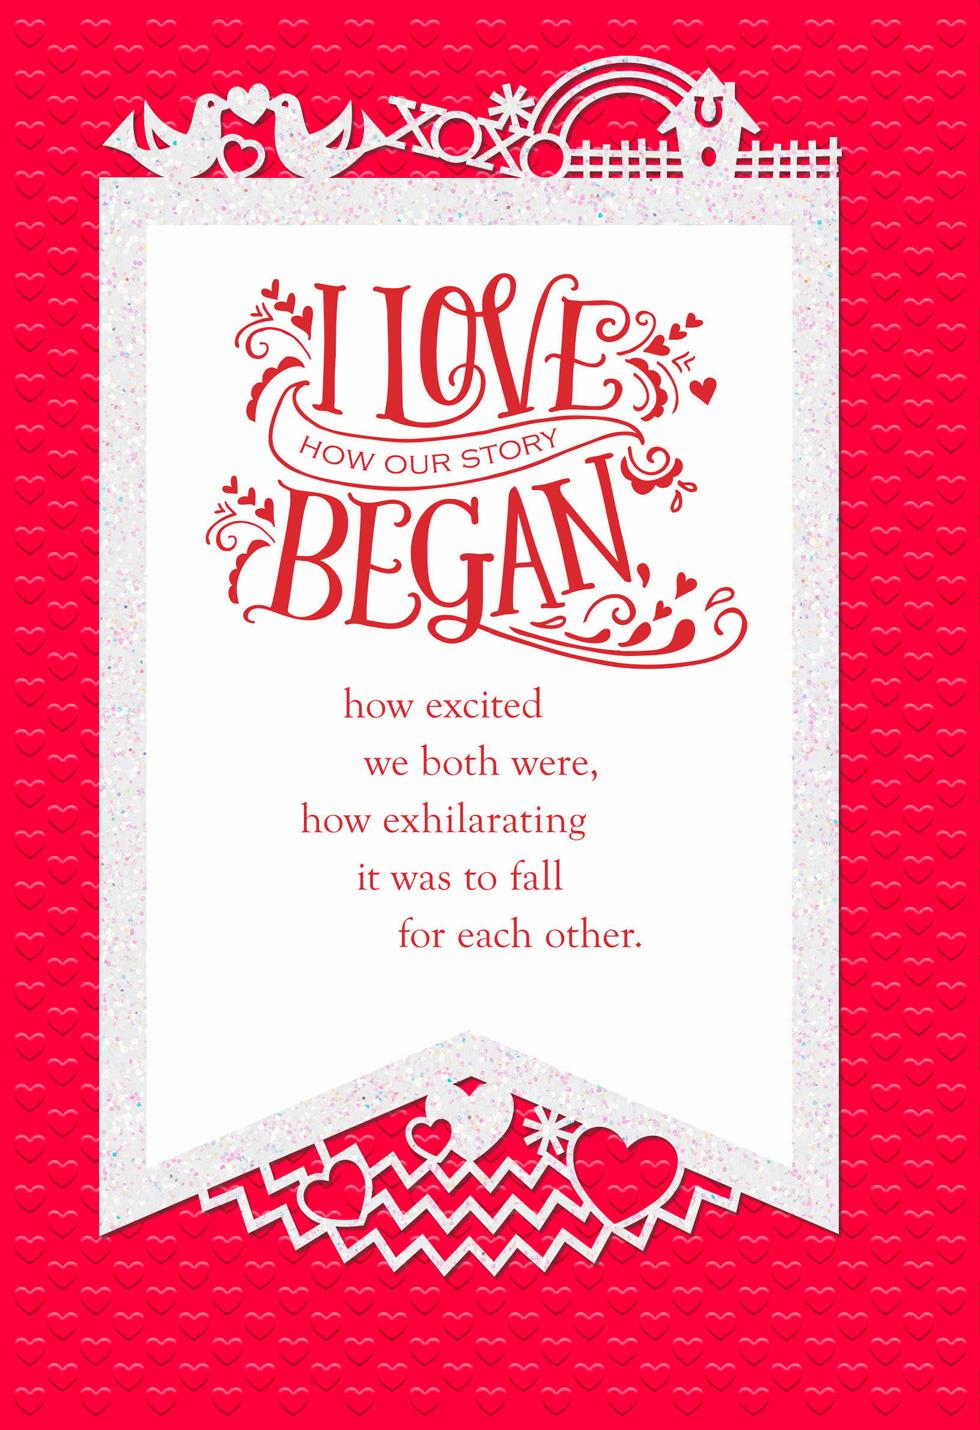 the story of us valentine's day card  greeting cards